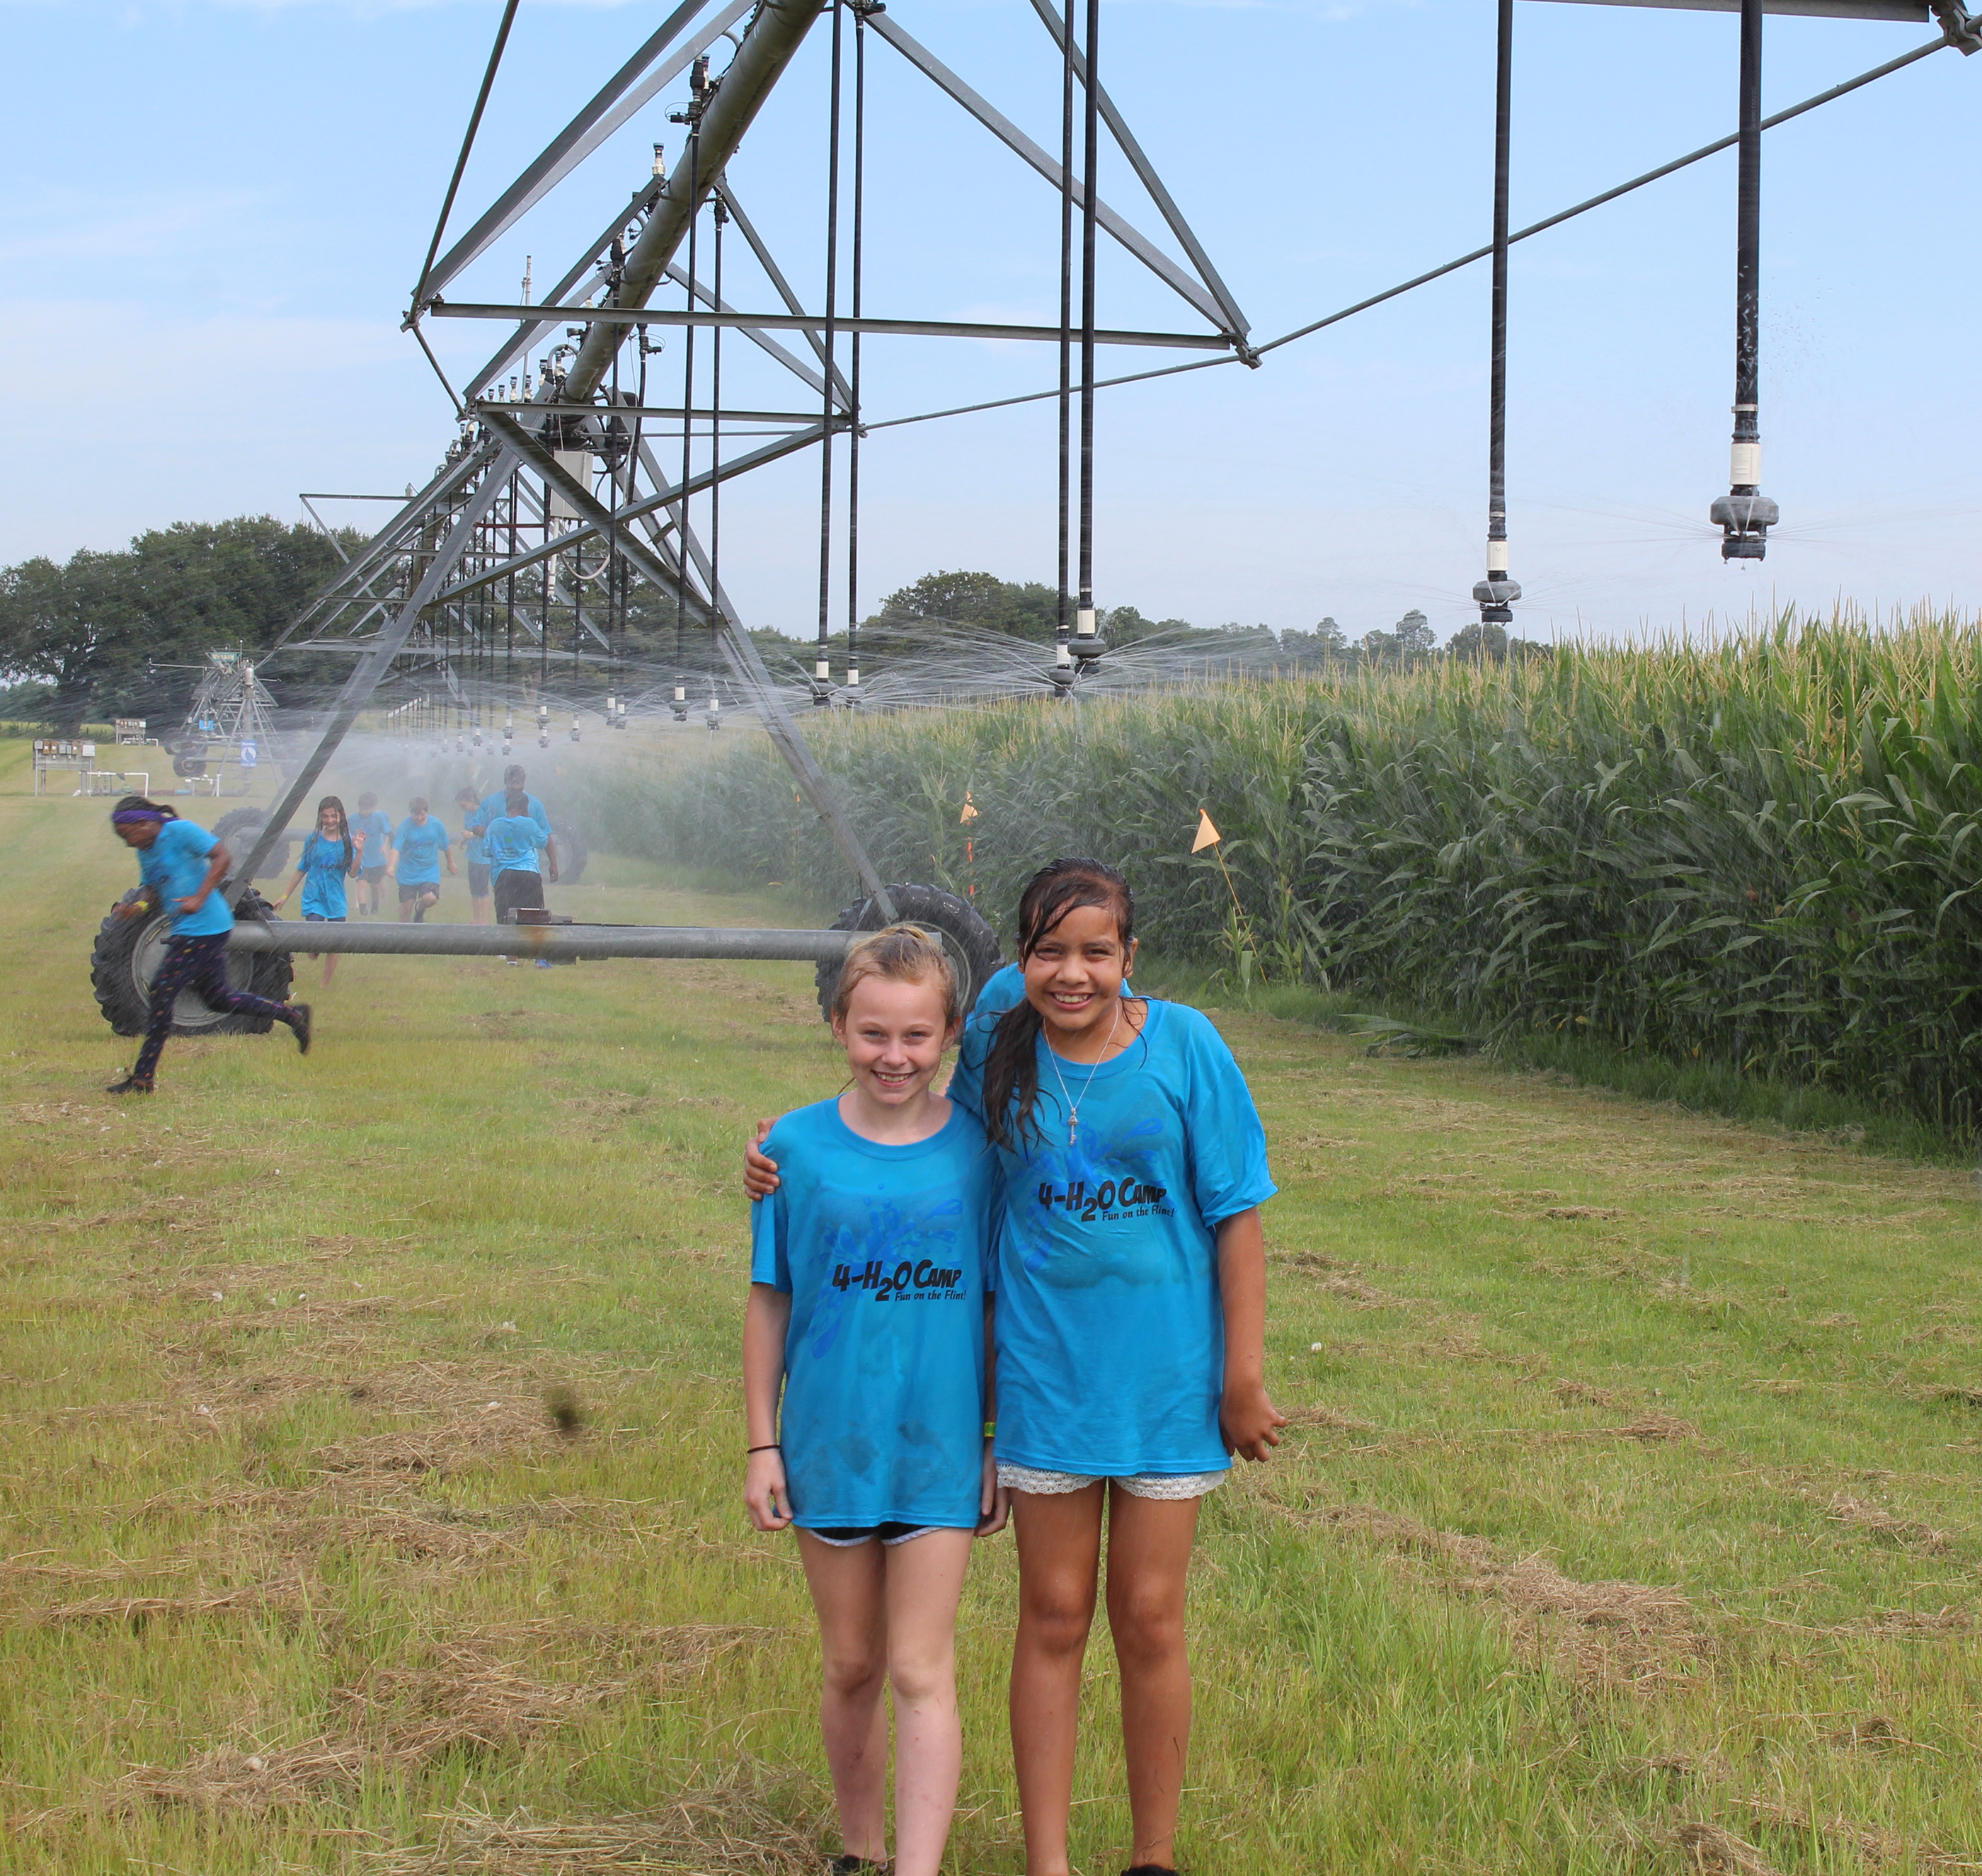 4-H members enjoyed a trip to UGA's Stripling Irrigation Research Park for 4-H20 camp on Wednesday, June 6.